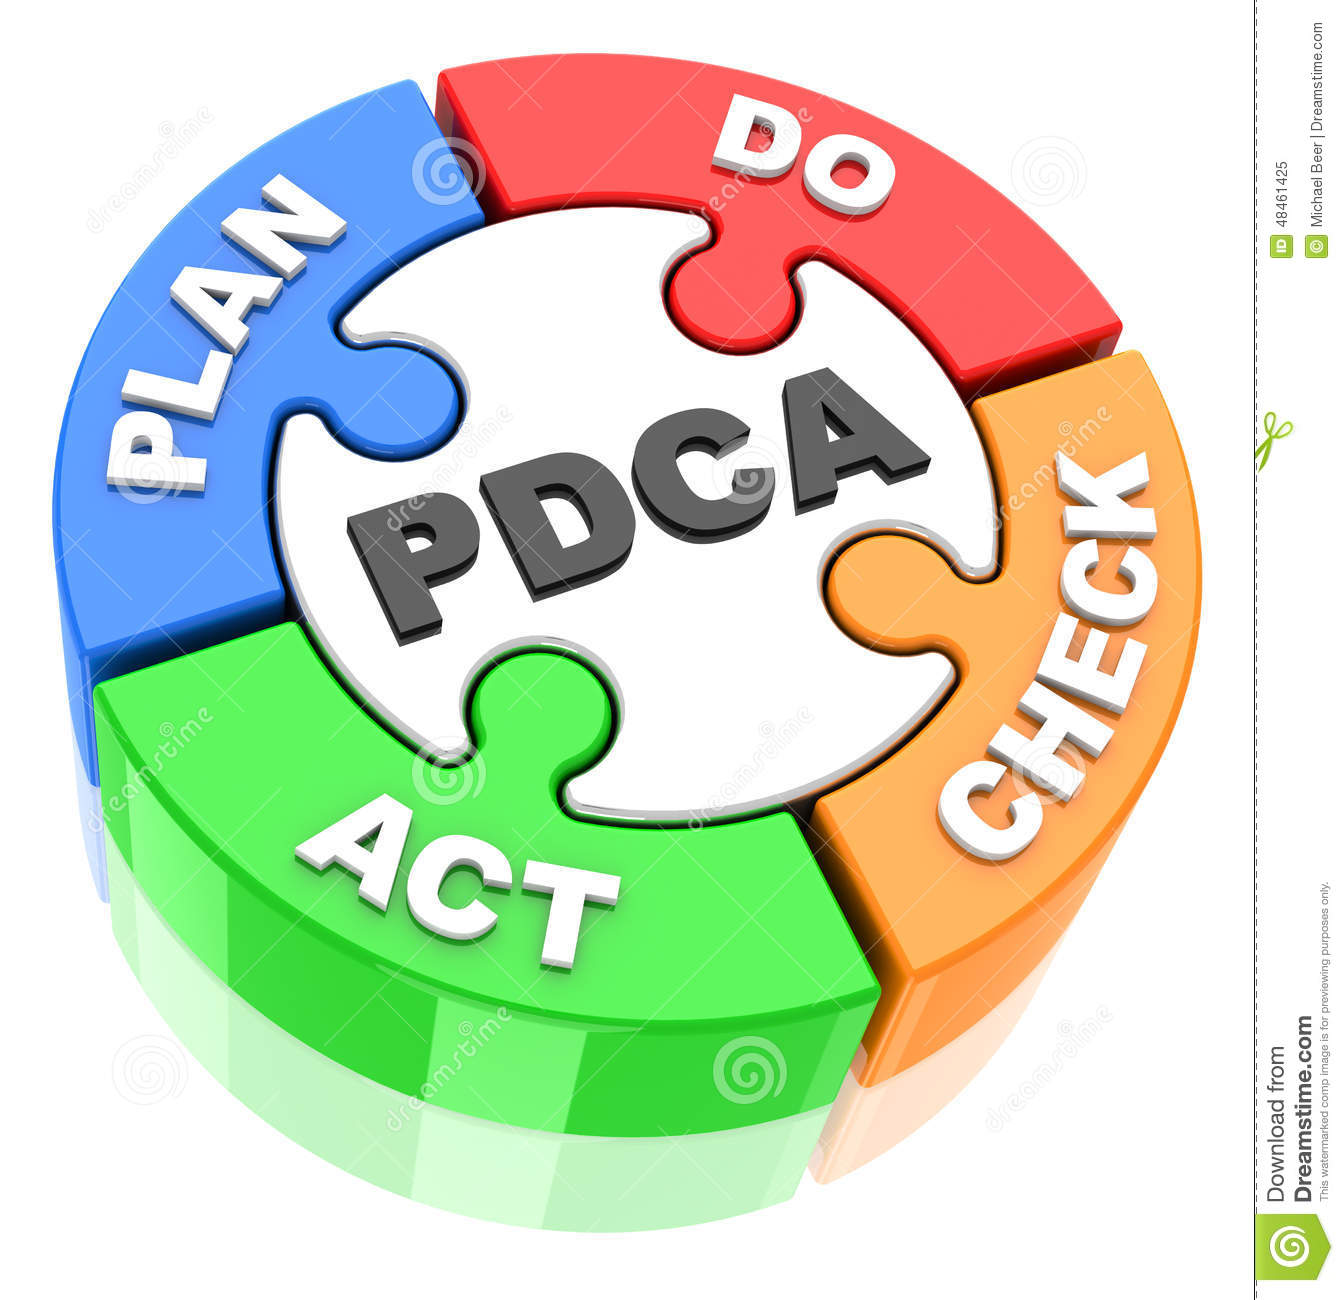 No Credit Check Credit Cards >> Pdca Circle Stock Illustration - Image: 48461425